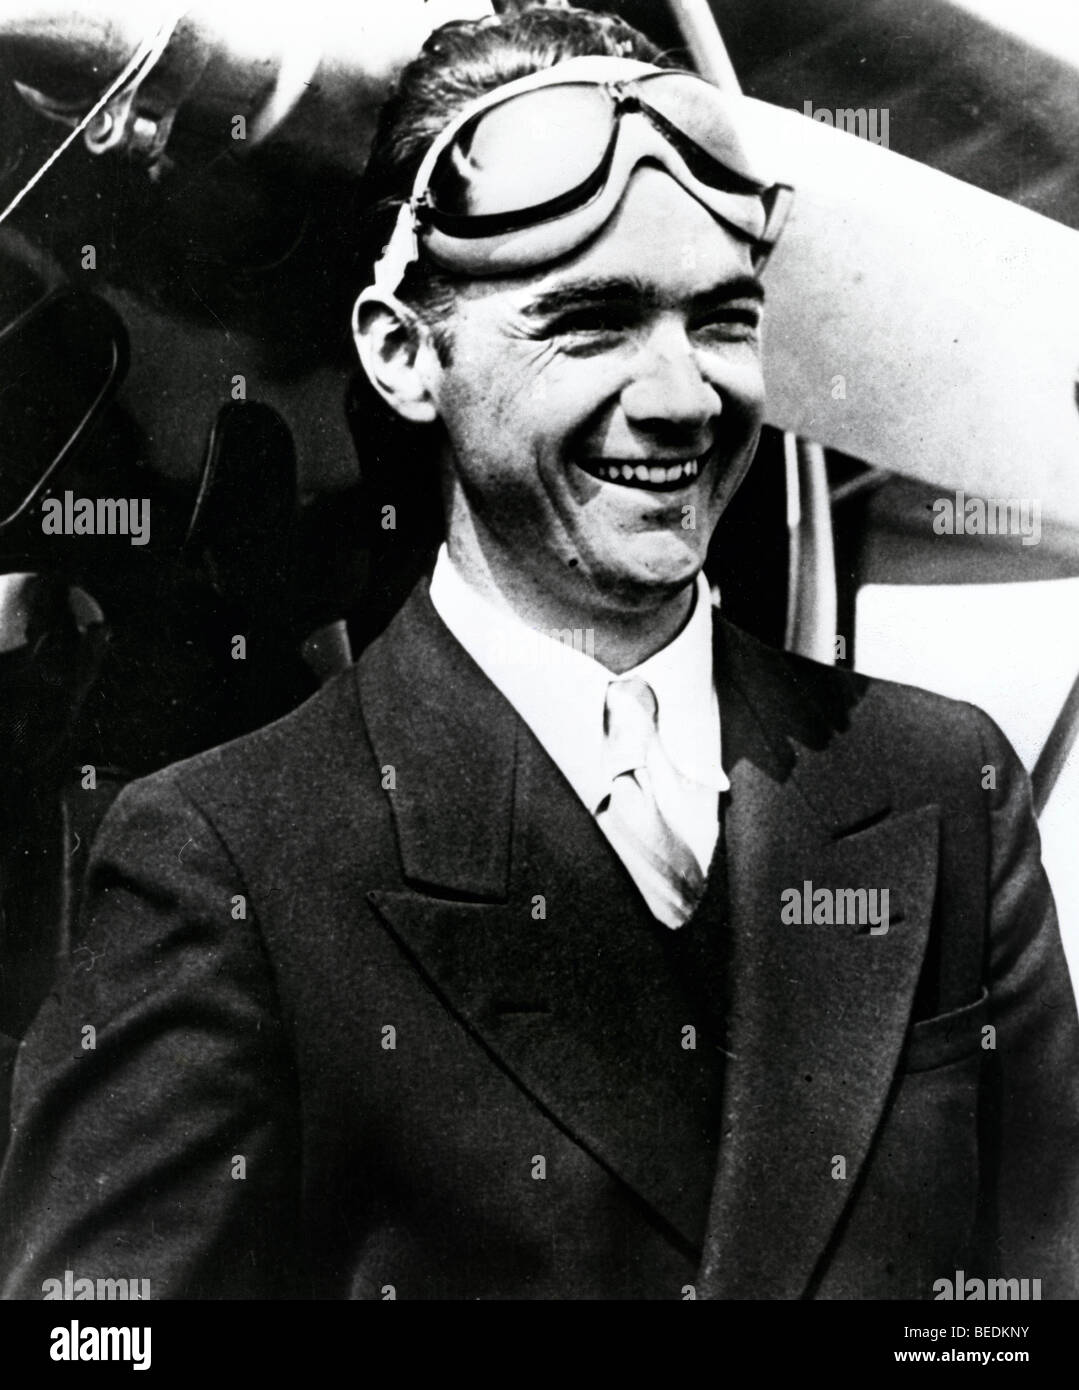 Billionaire Howard Hughes after flying his plane - Stock Image